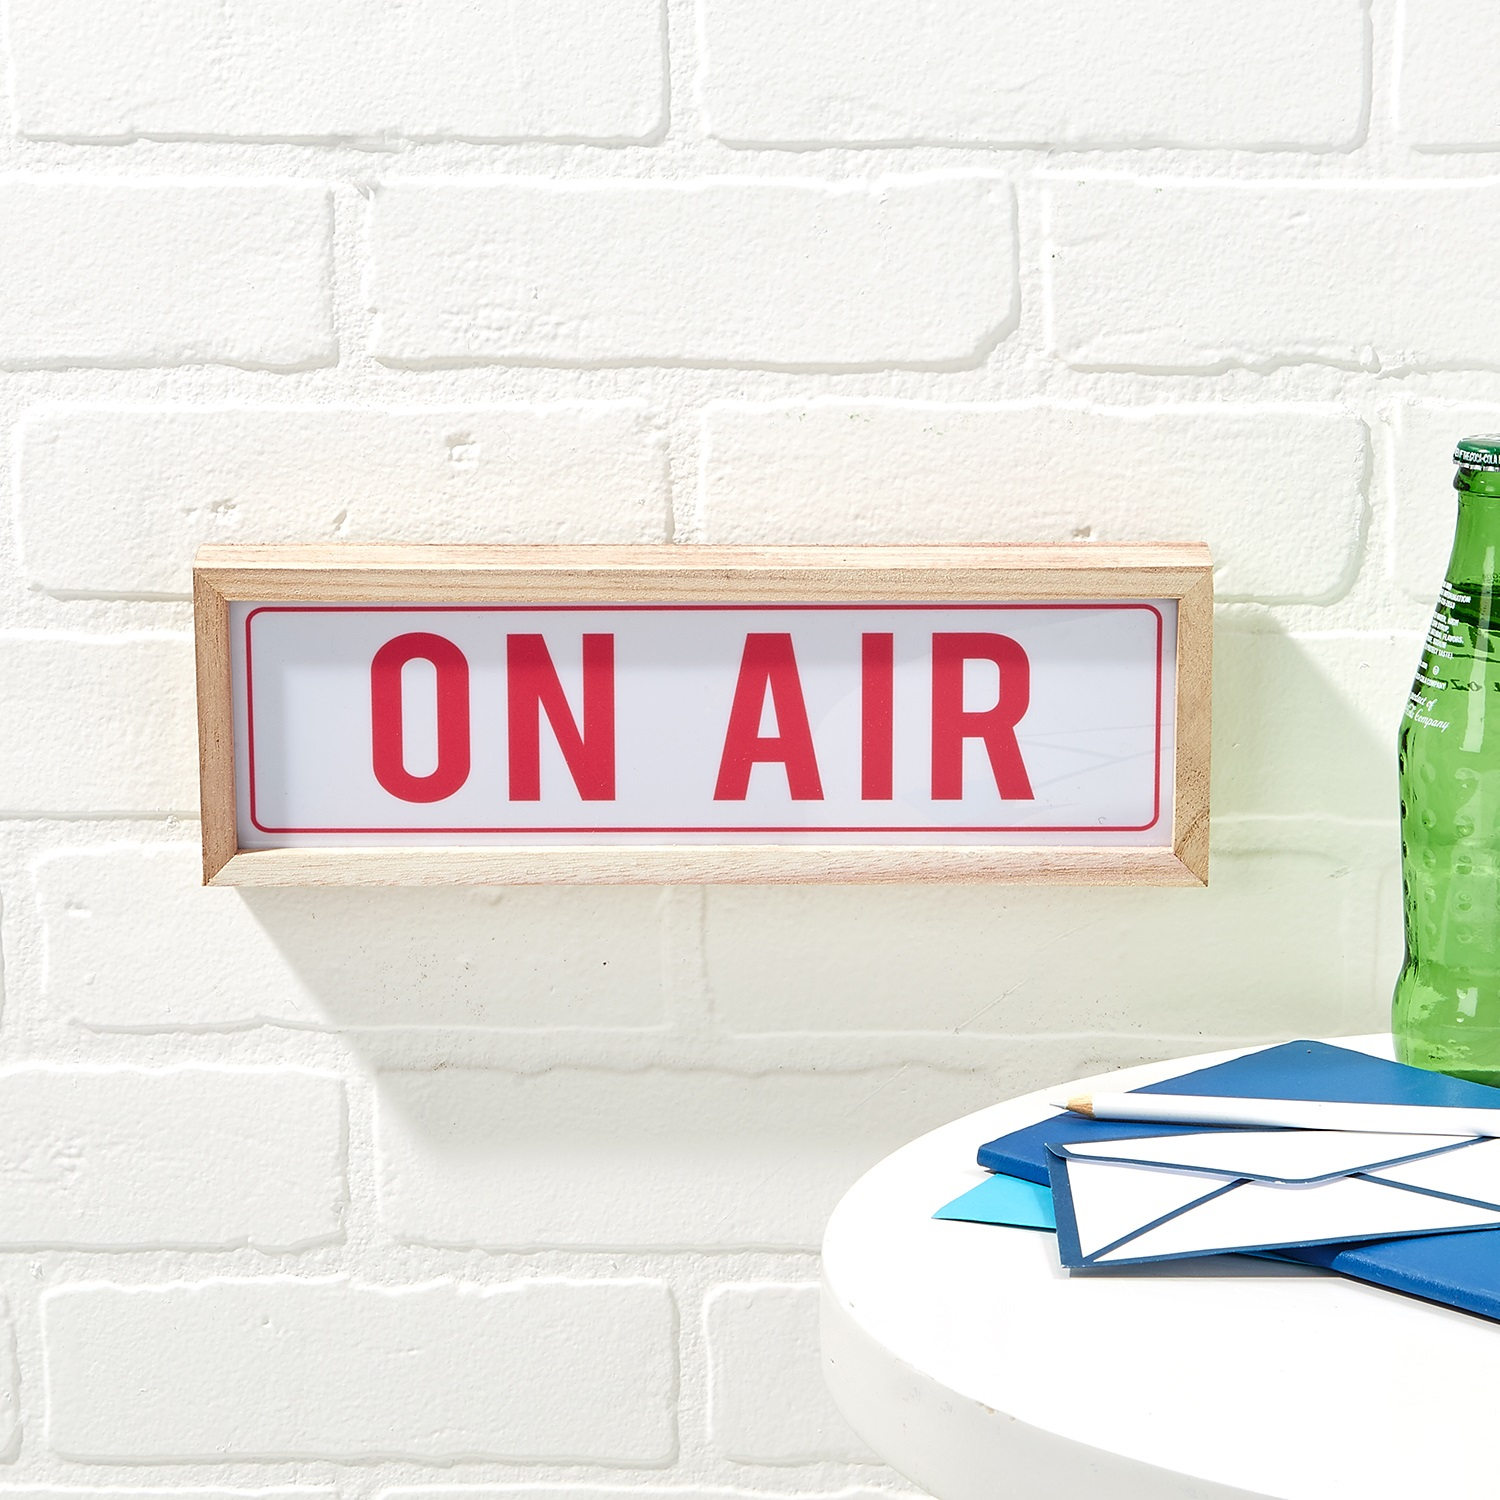 on air led light box wall sign in gift box ideal for gifting 30